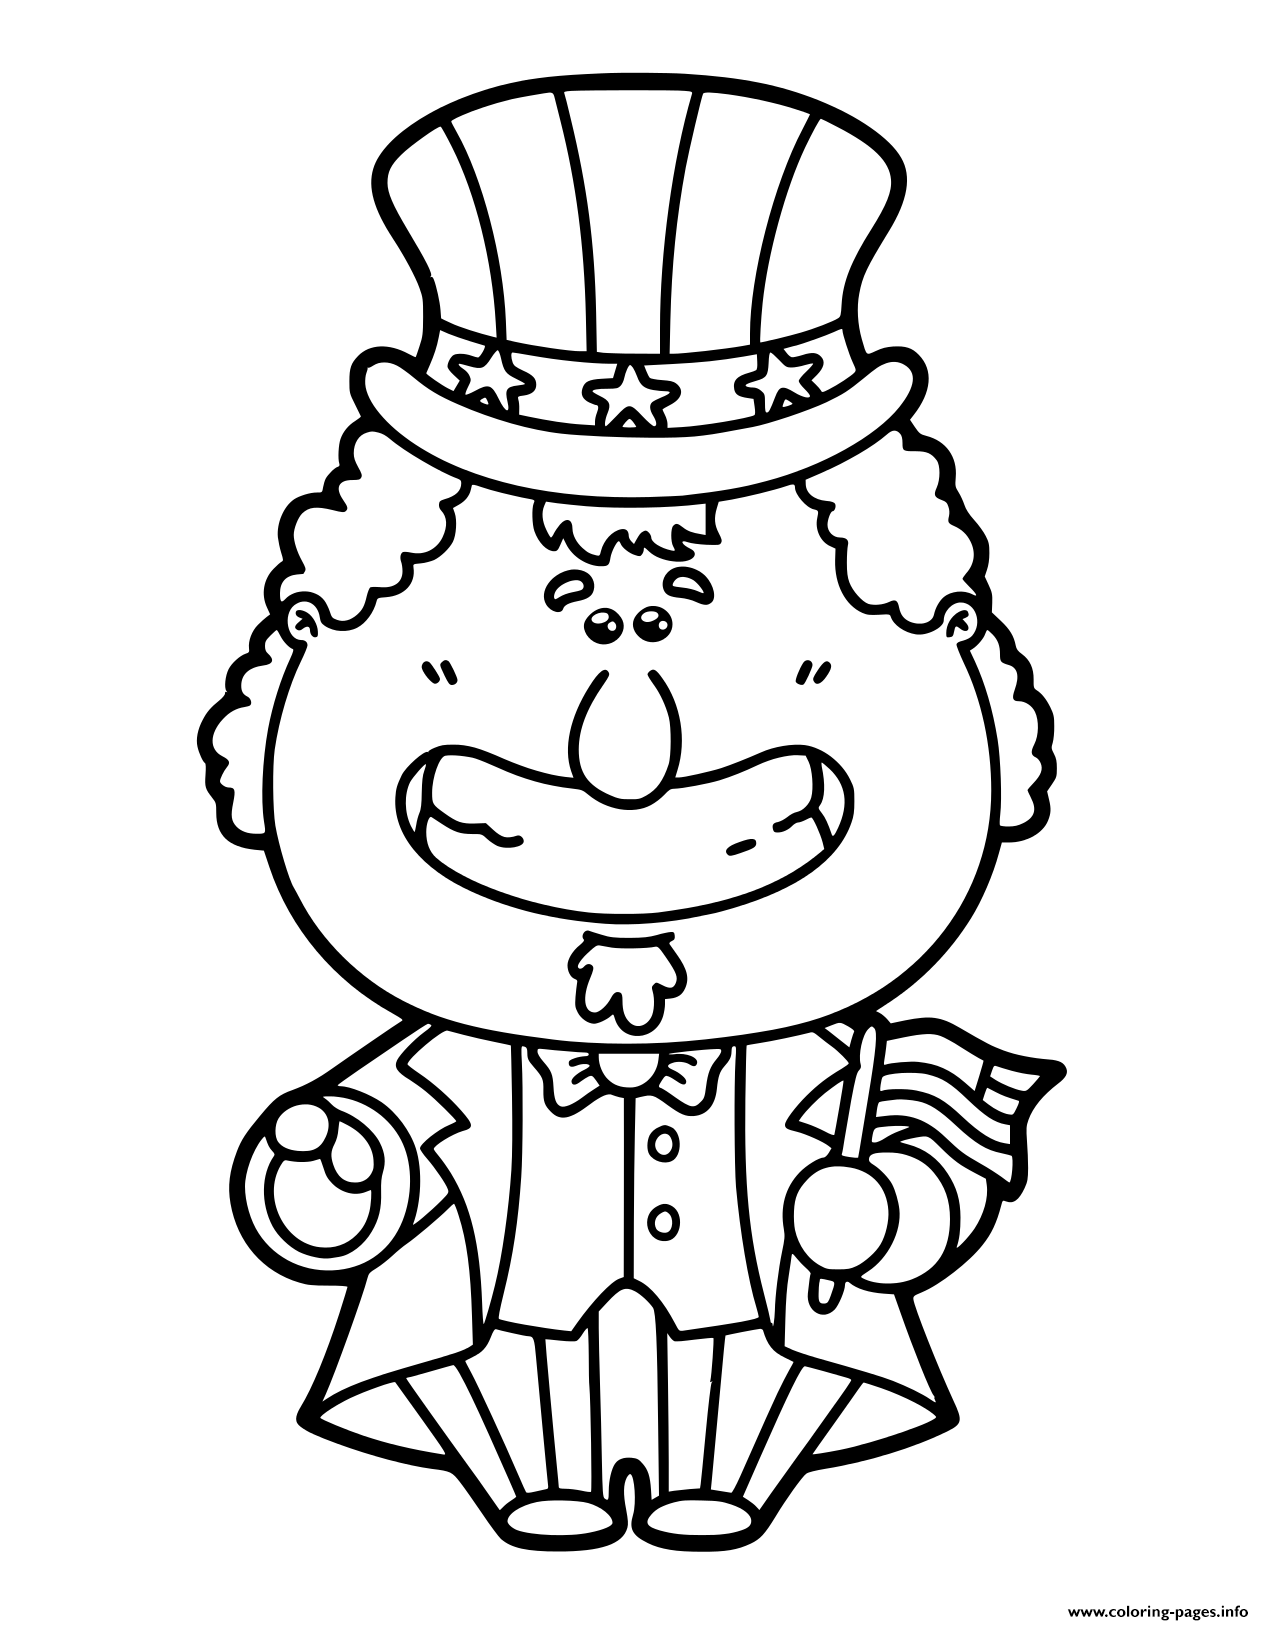 Funny Uncle Sam Cartoon Which Is Holding America coloring pages